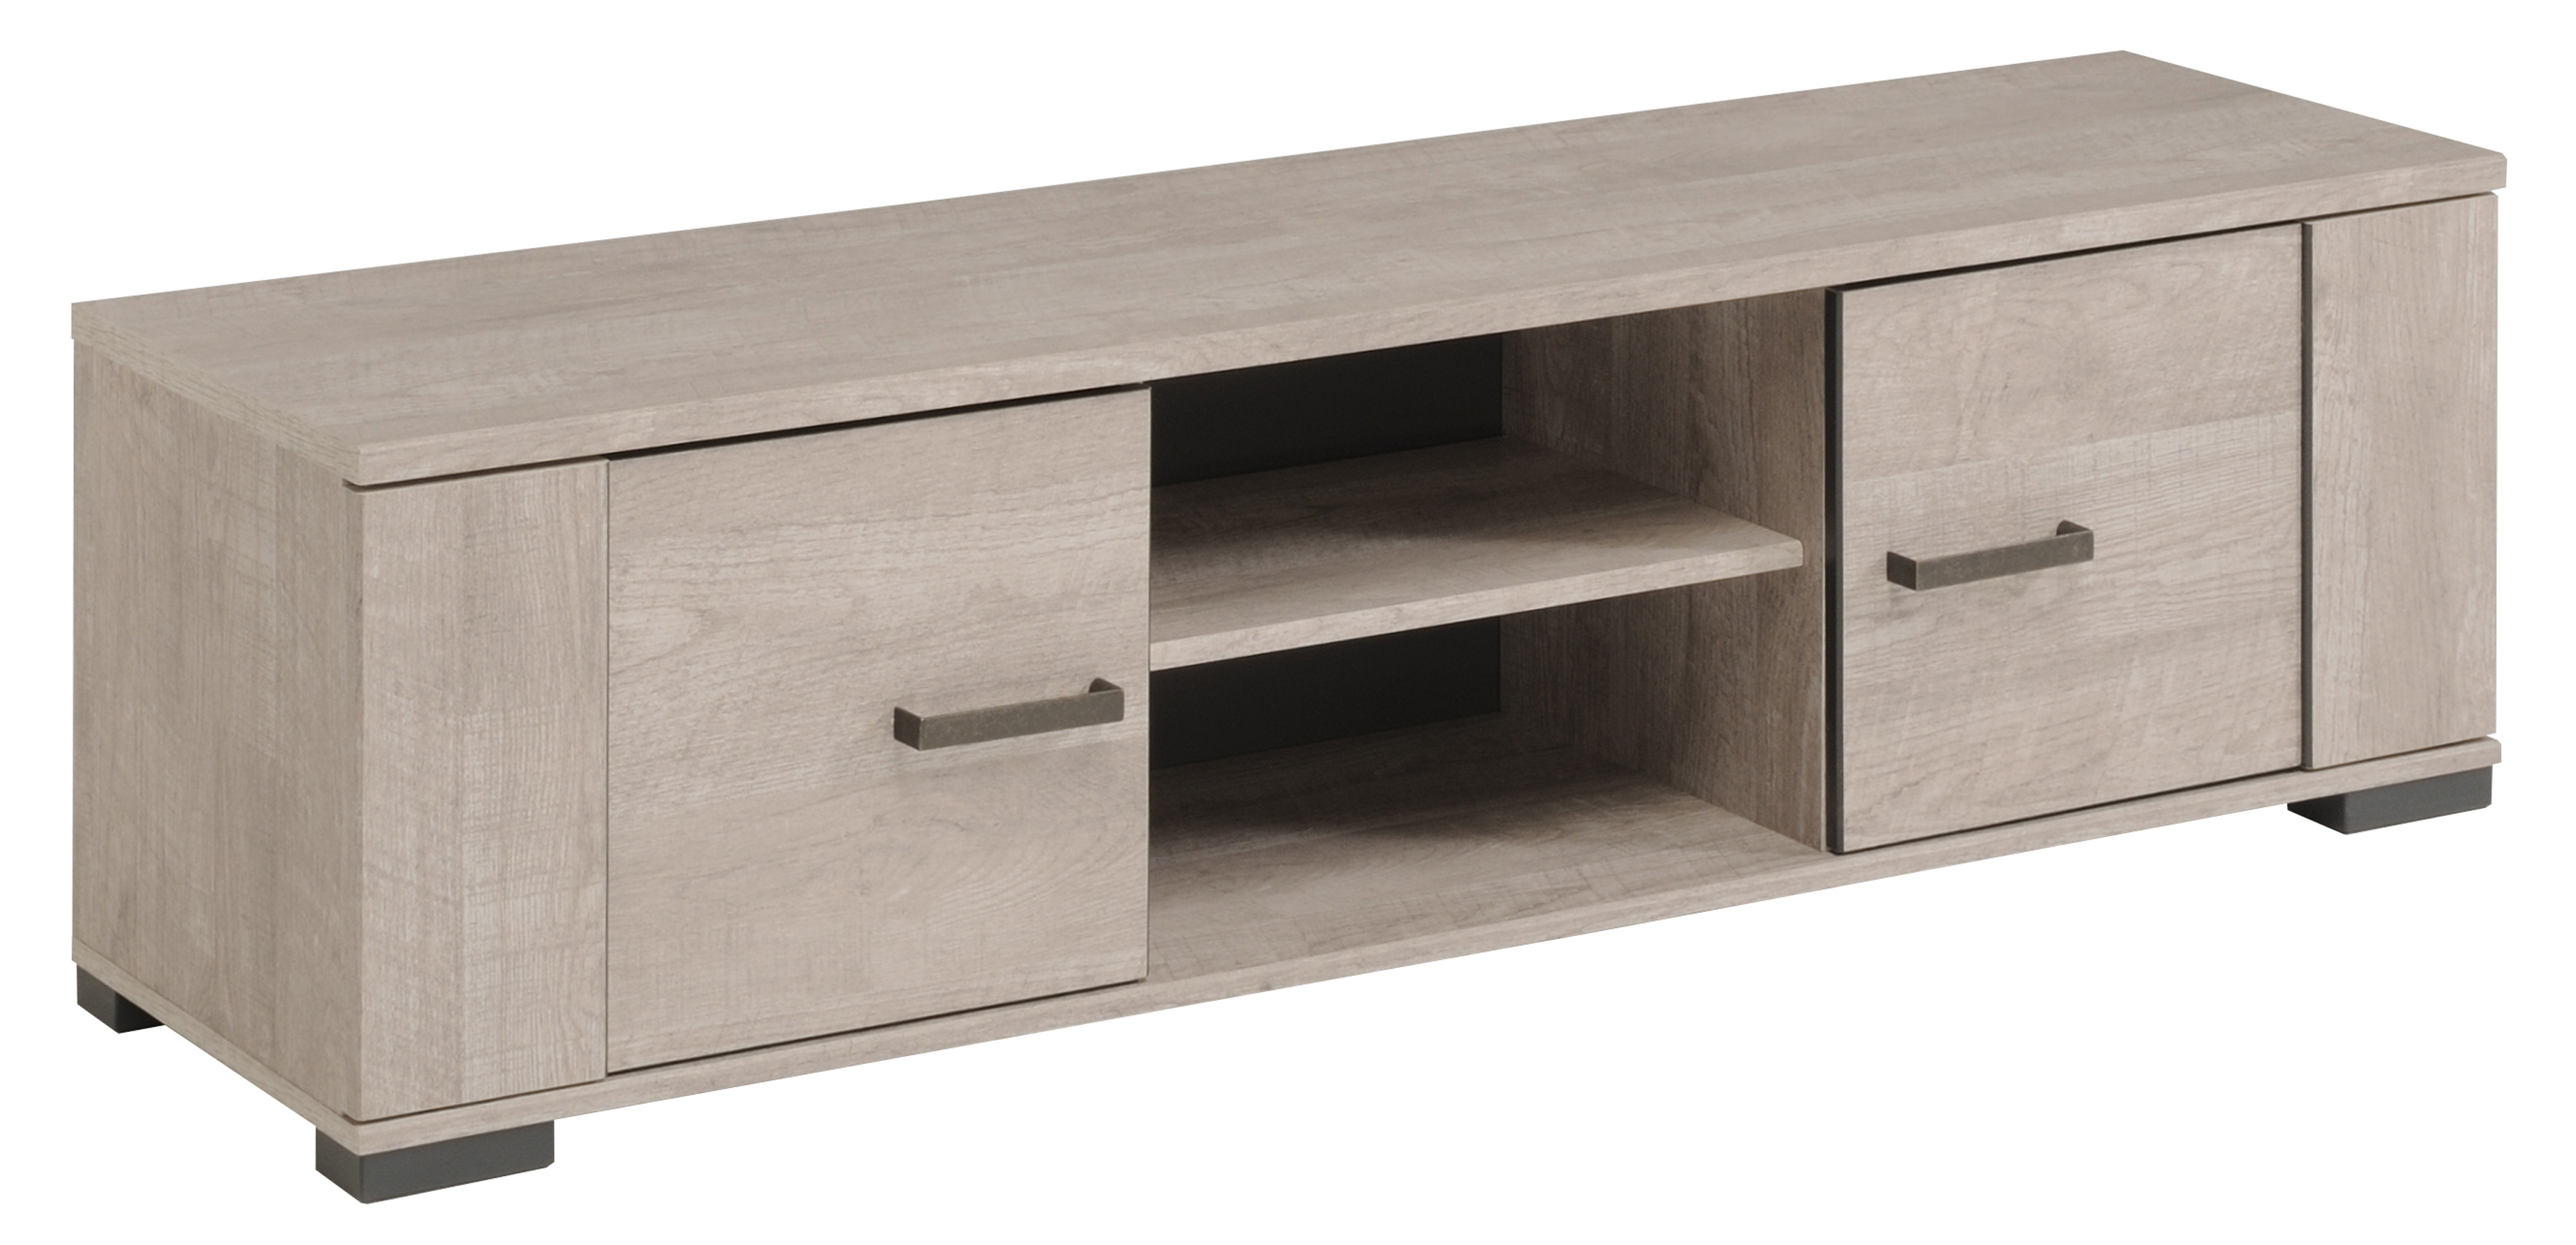 Meuble Tv Bas 2 Portes 2 Niches Gris Loft Et Gris Ombre Harvey  # Meuble Tv Motorise